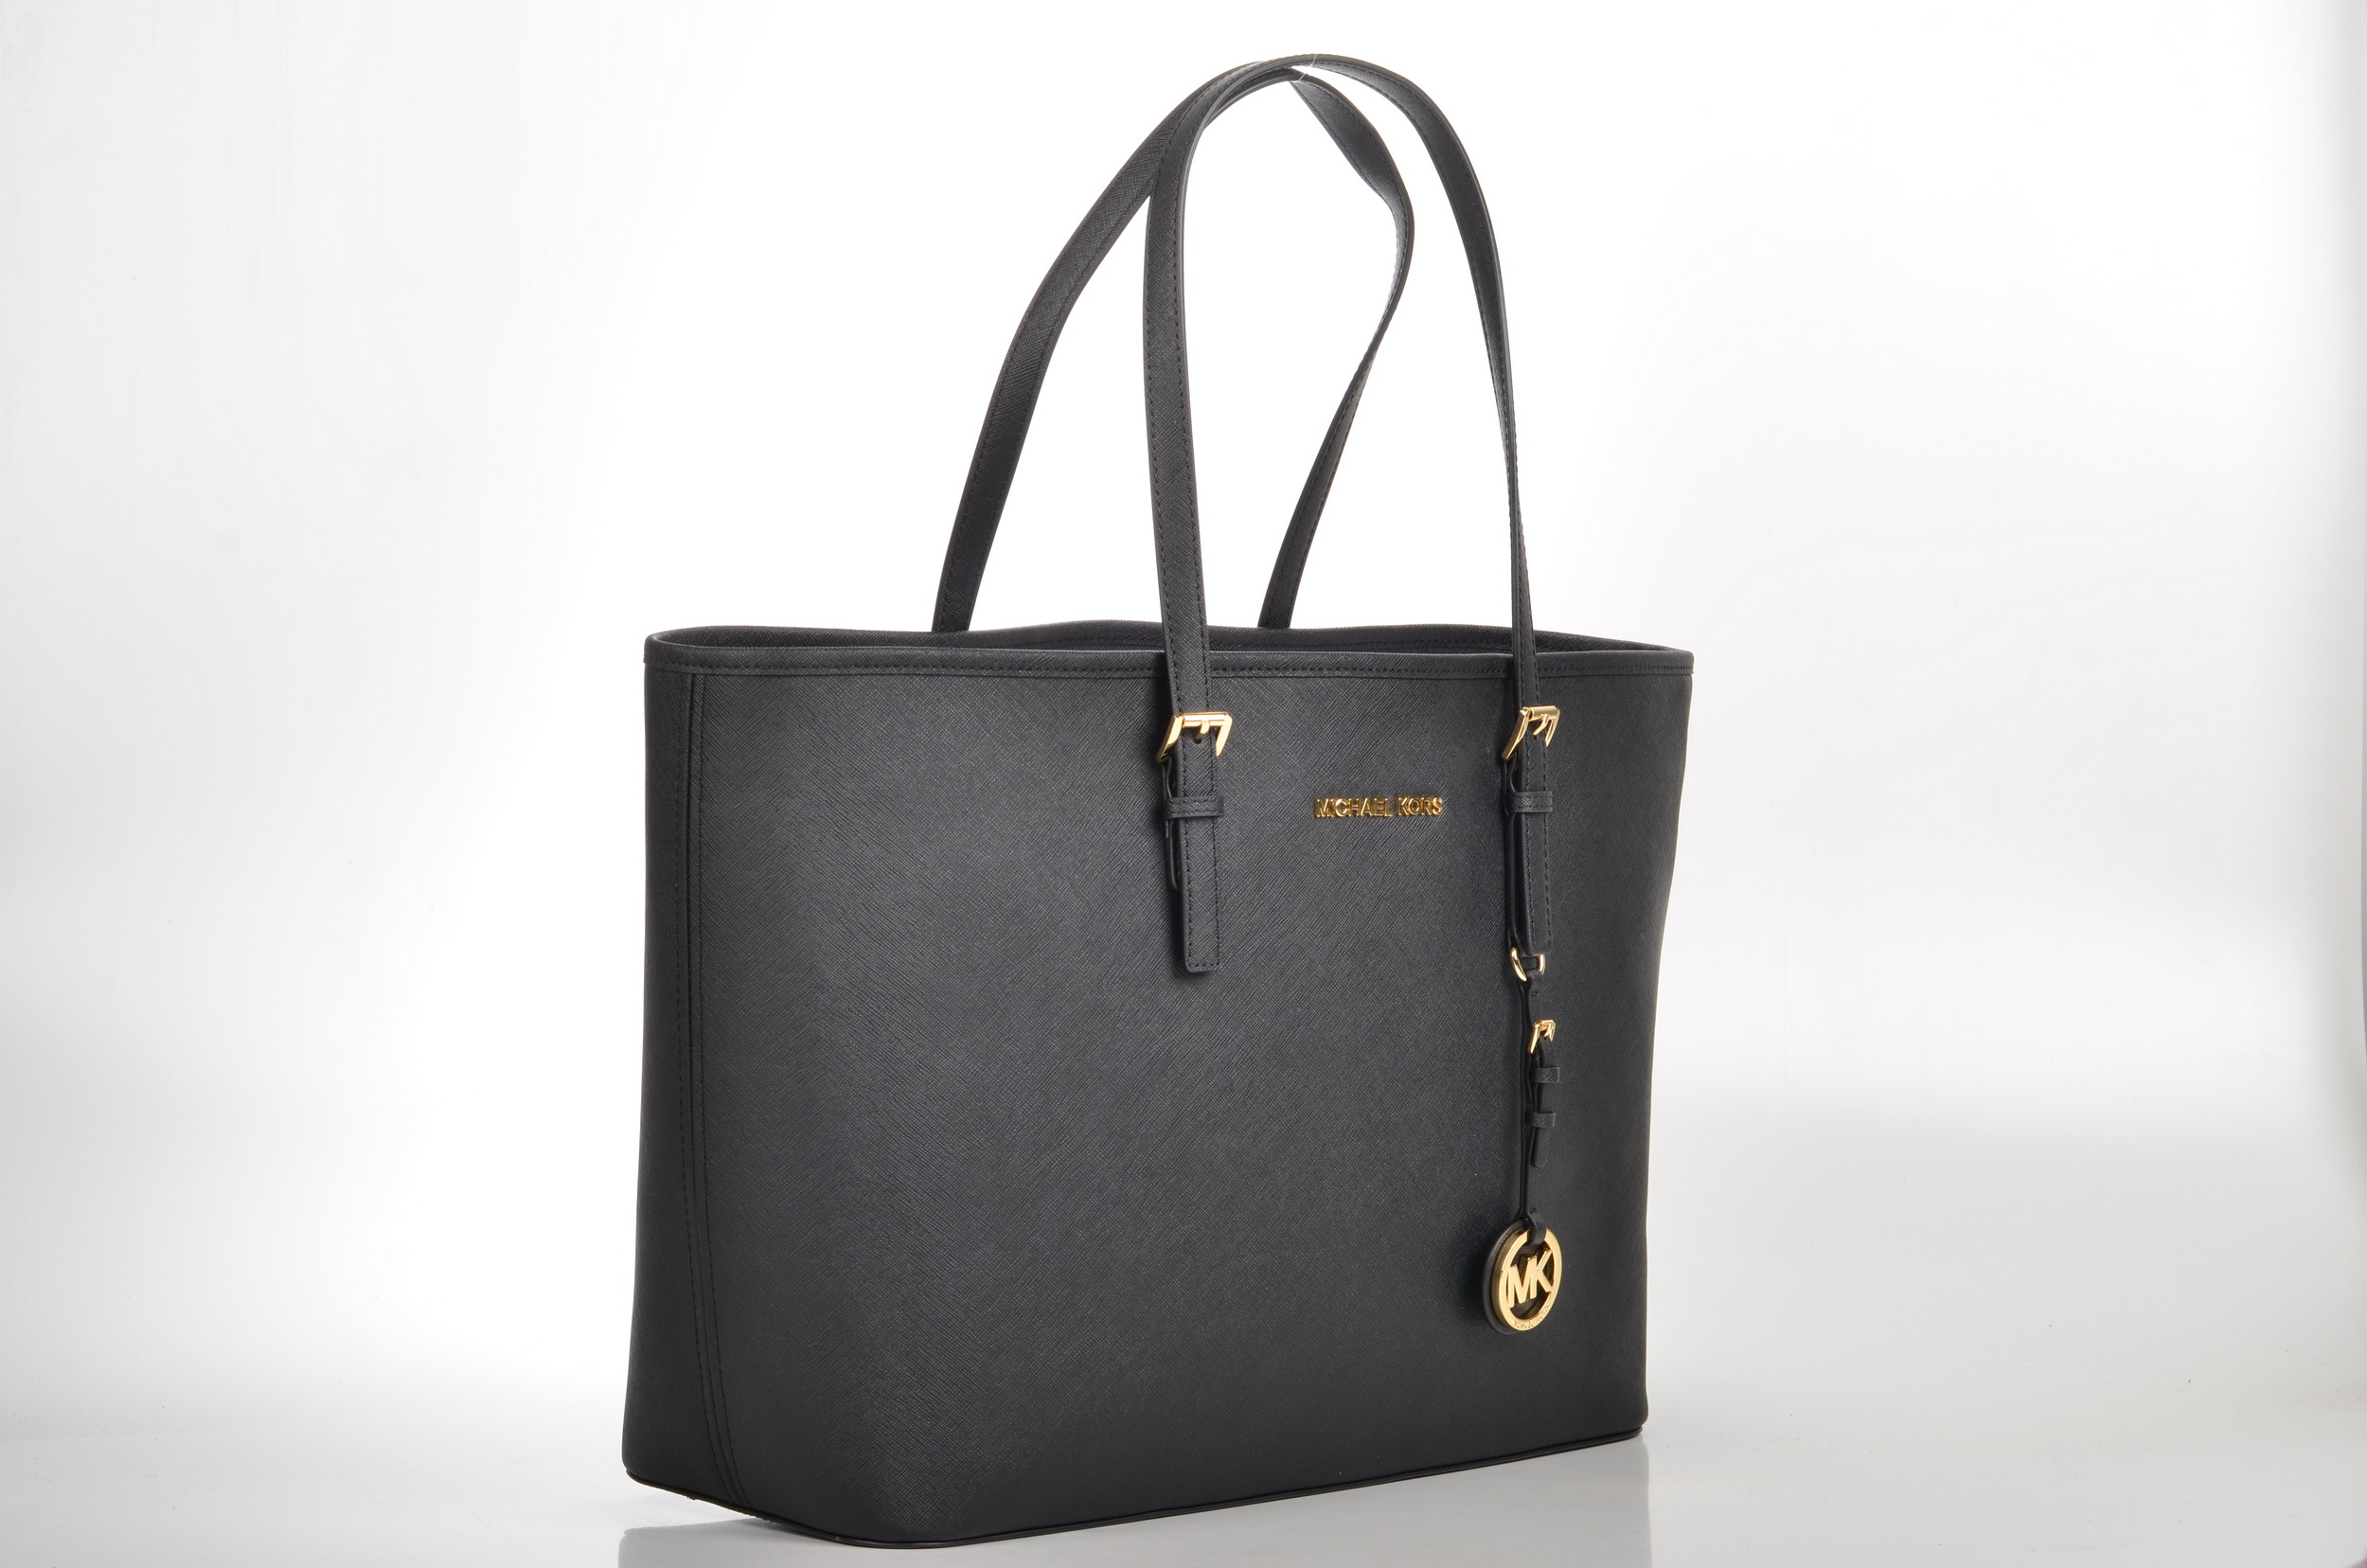 where to buy michael kors jet set md tote 1386f d87ff